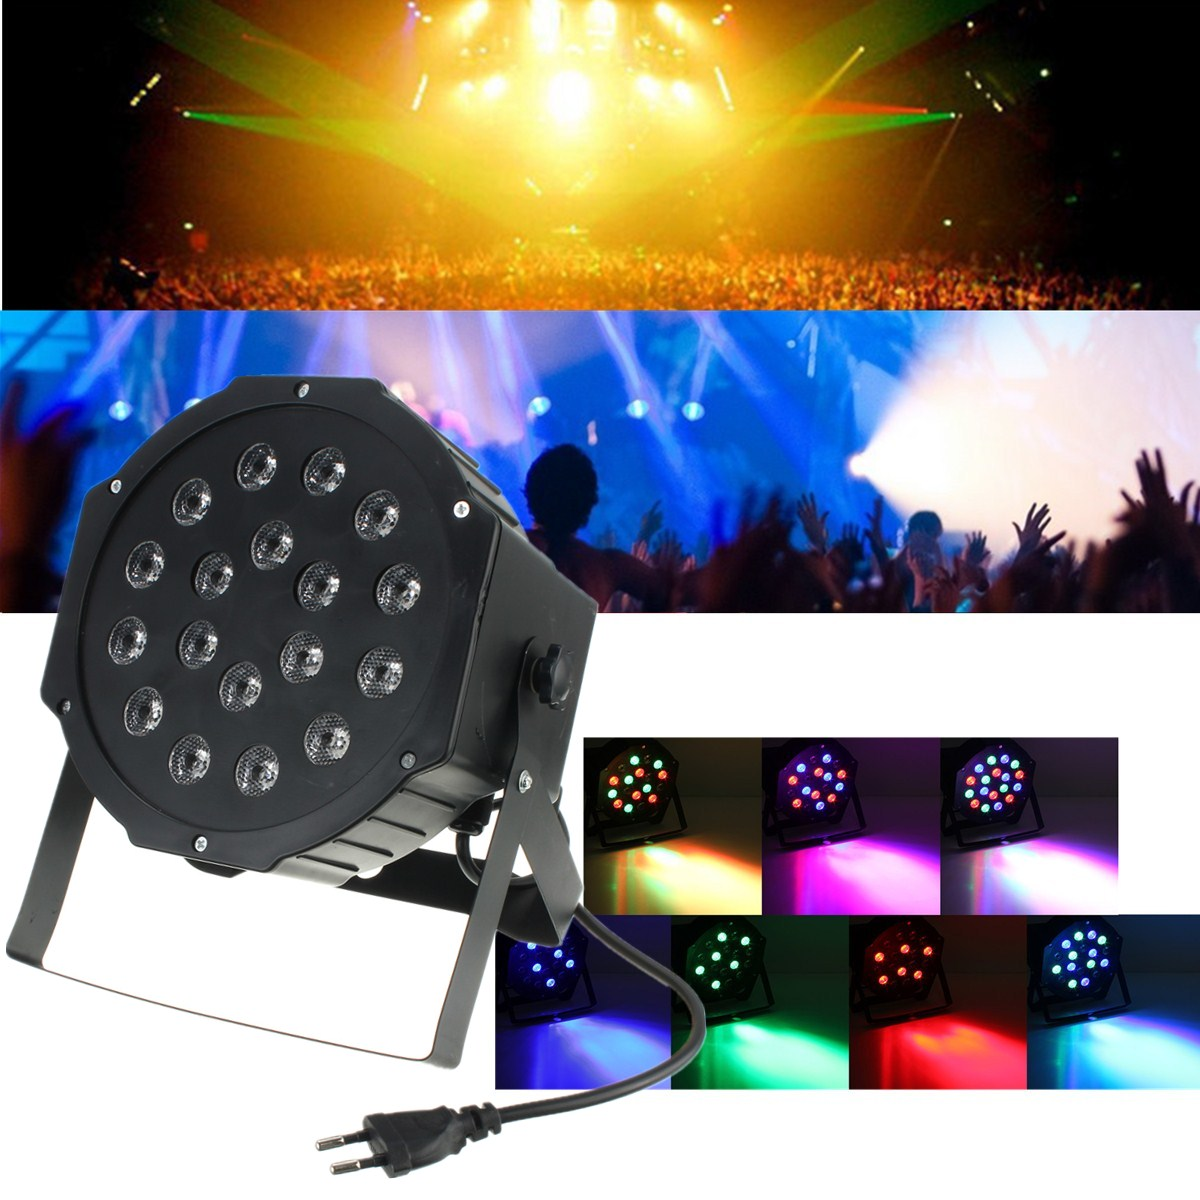 18W RGB LED Stage Light Auto Sound DMX-512 PAR Lamp Laser Projector Party Disco KTV DJ Stage Lighting Effect AC110-220V